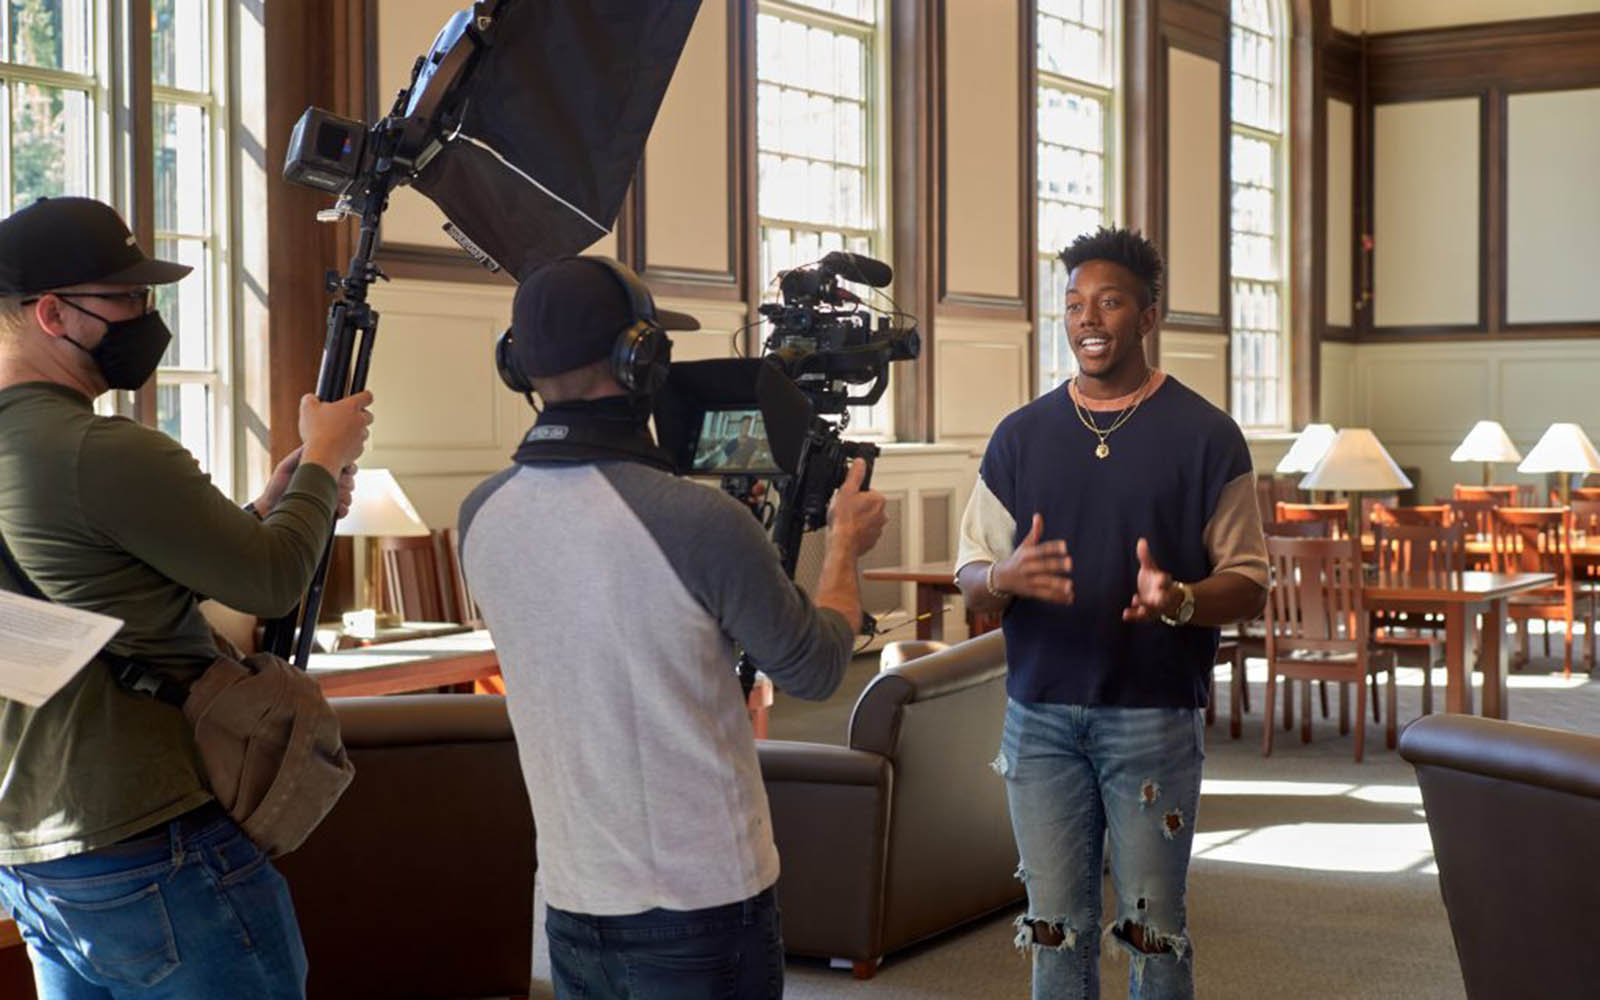 """Shane Young '21 (BUS) is interviewed at the Wilbur Cross North Reading Room for """"The College Tour"""" a television program on Amazon on April 6, 2021. (Peter Morenus/UConn Photo)"""